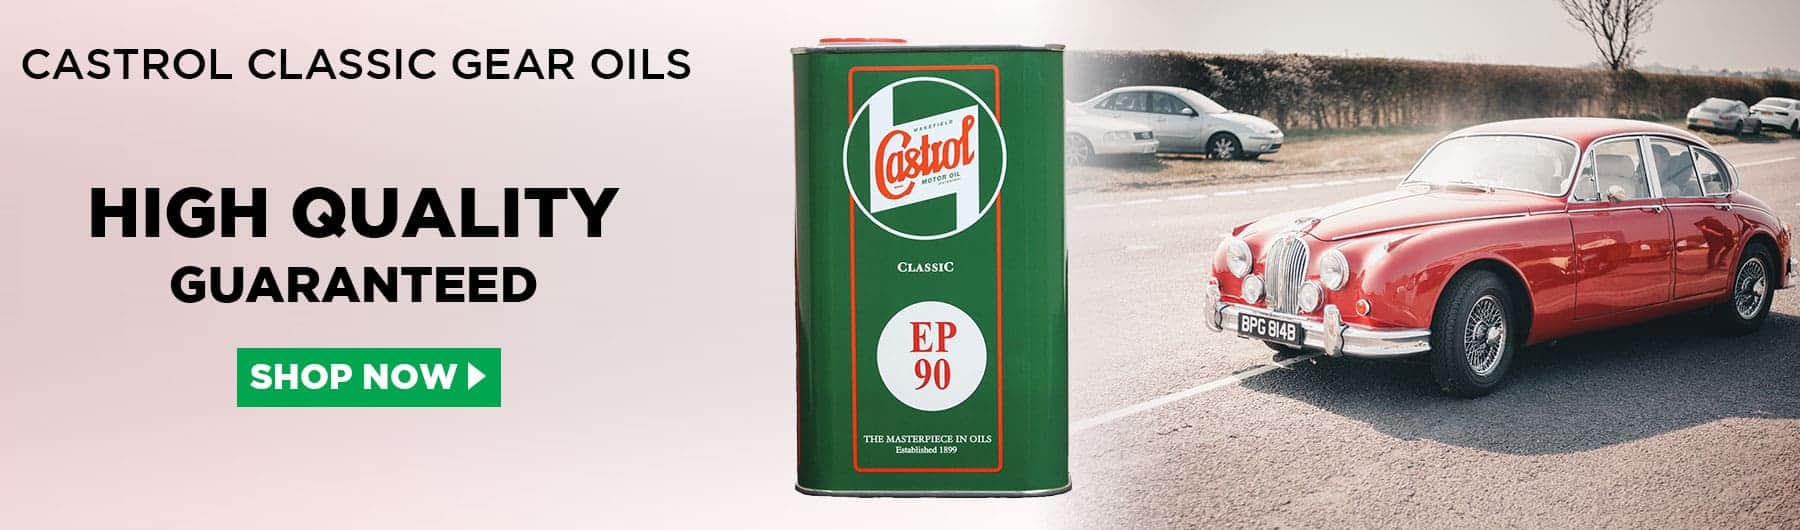 Castrol Classic Gear Oils in Australia